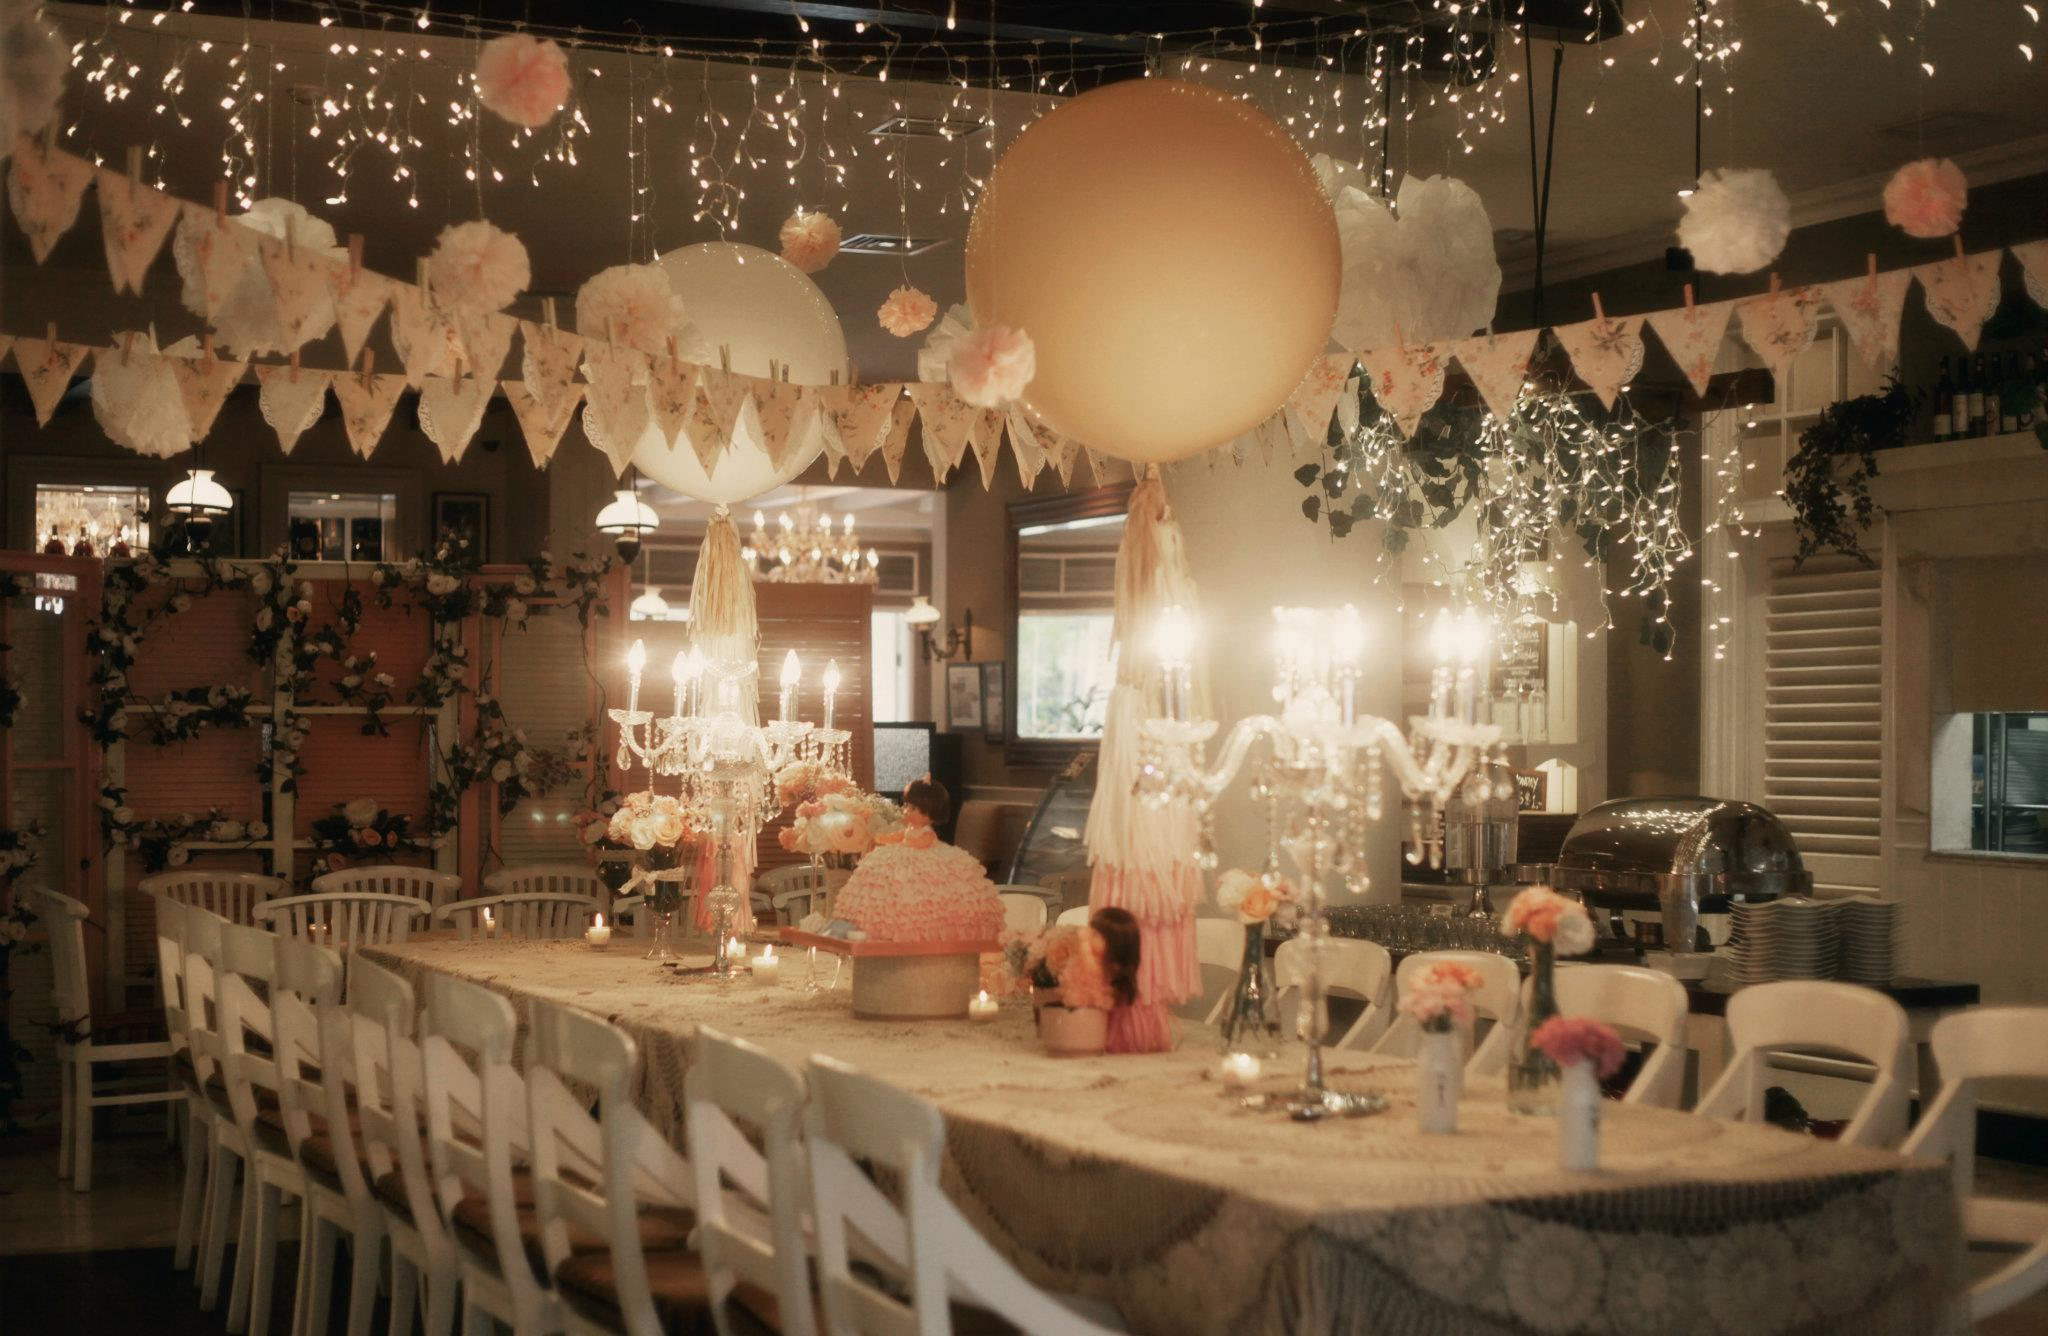 Baby Shower Venue Ideas Singapore ~ She says magical bash for the miracle baby part we